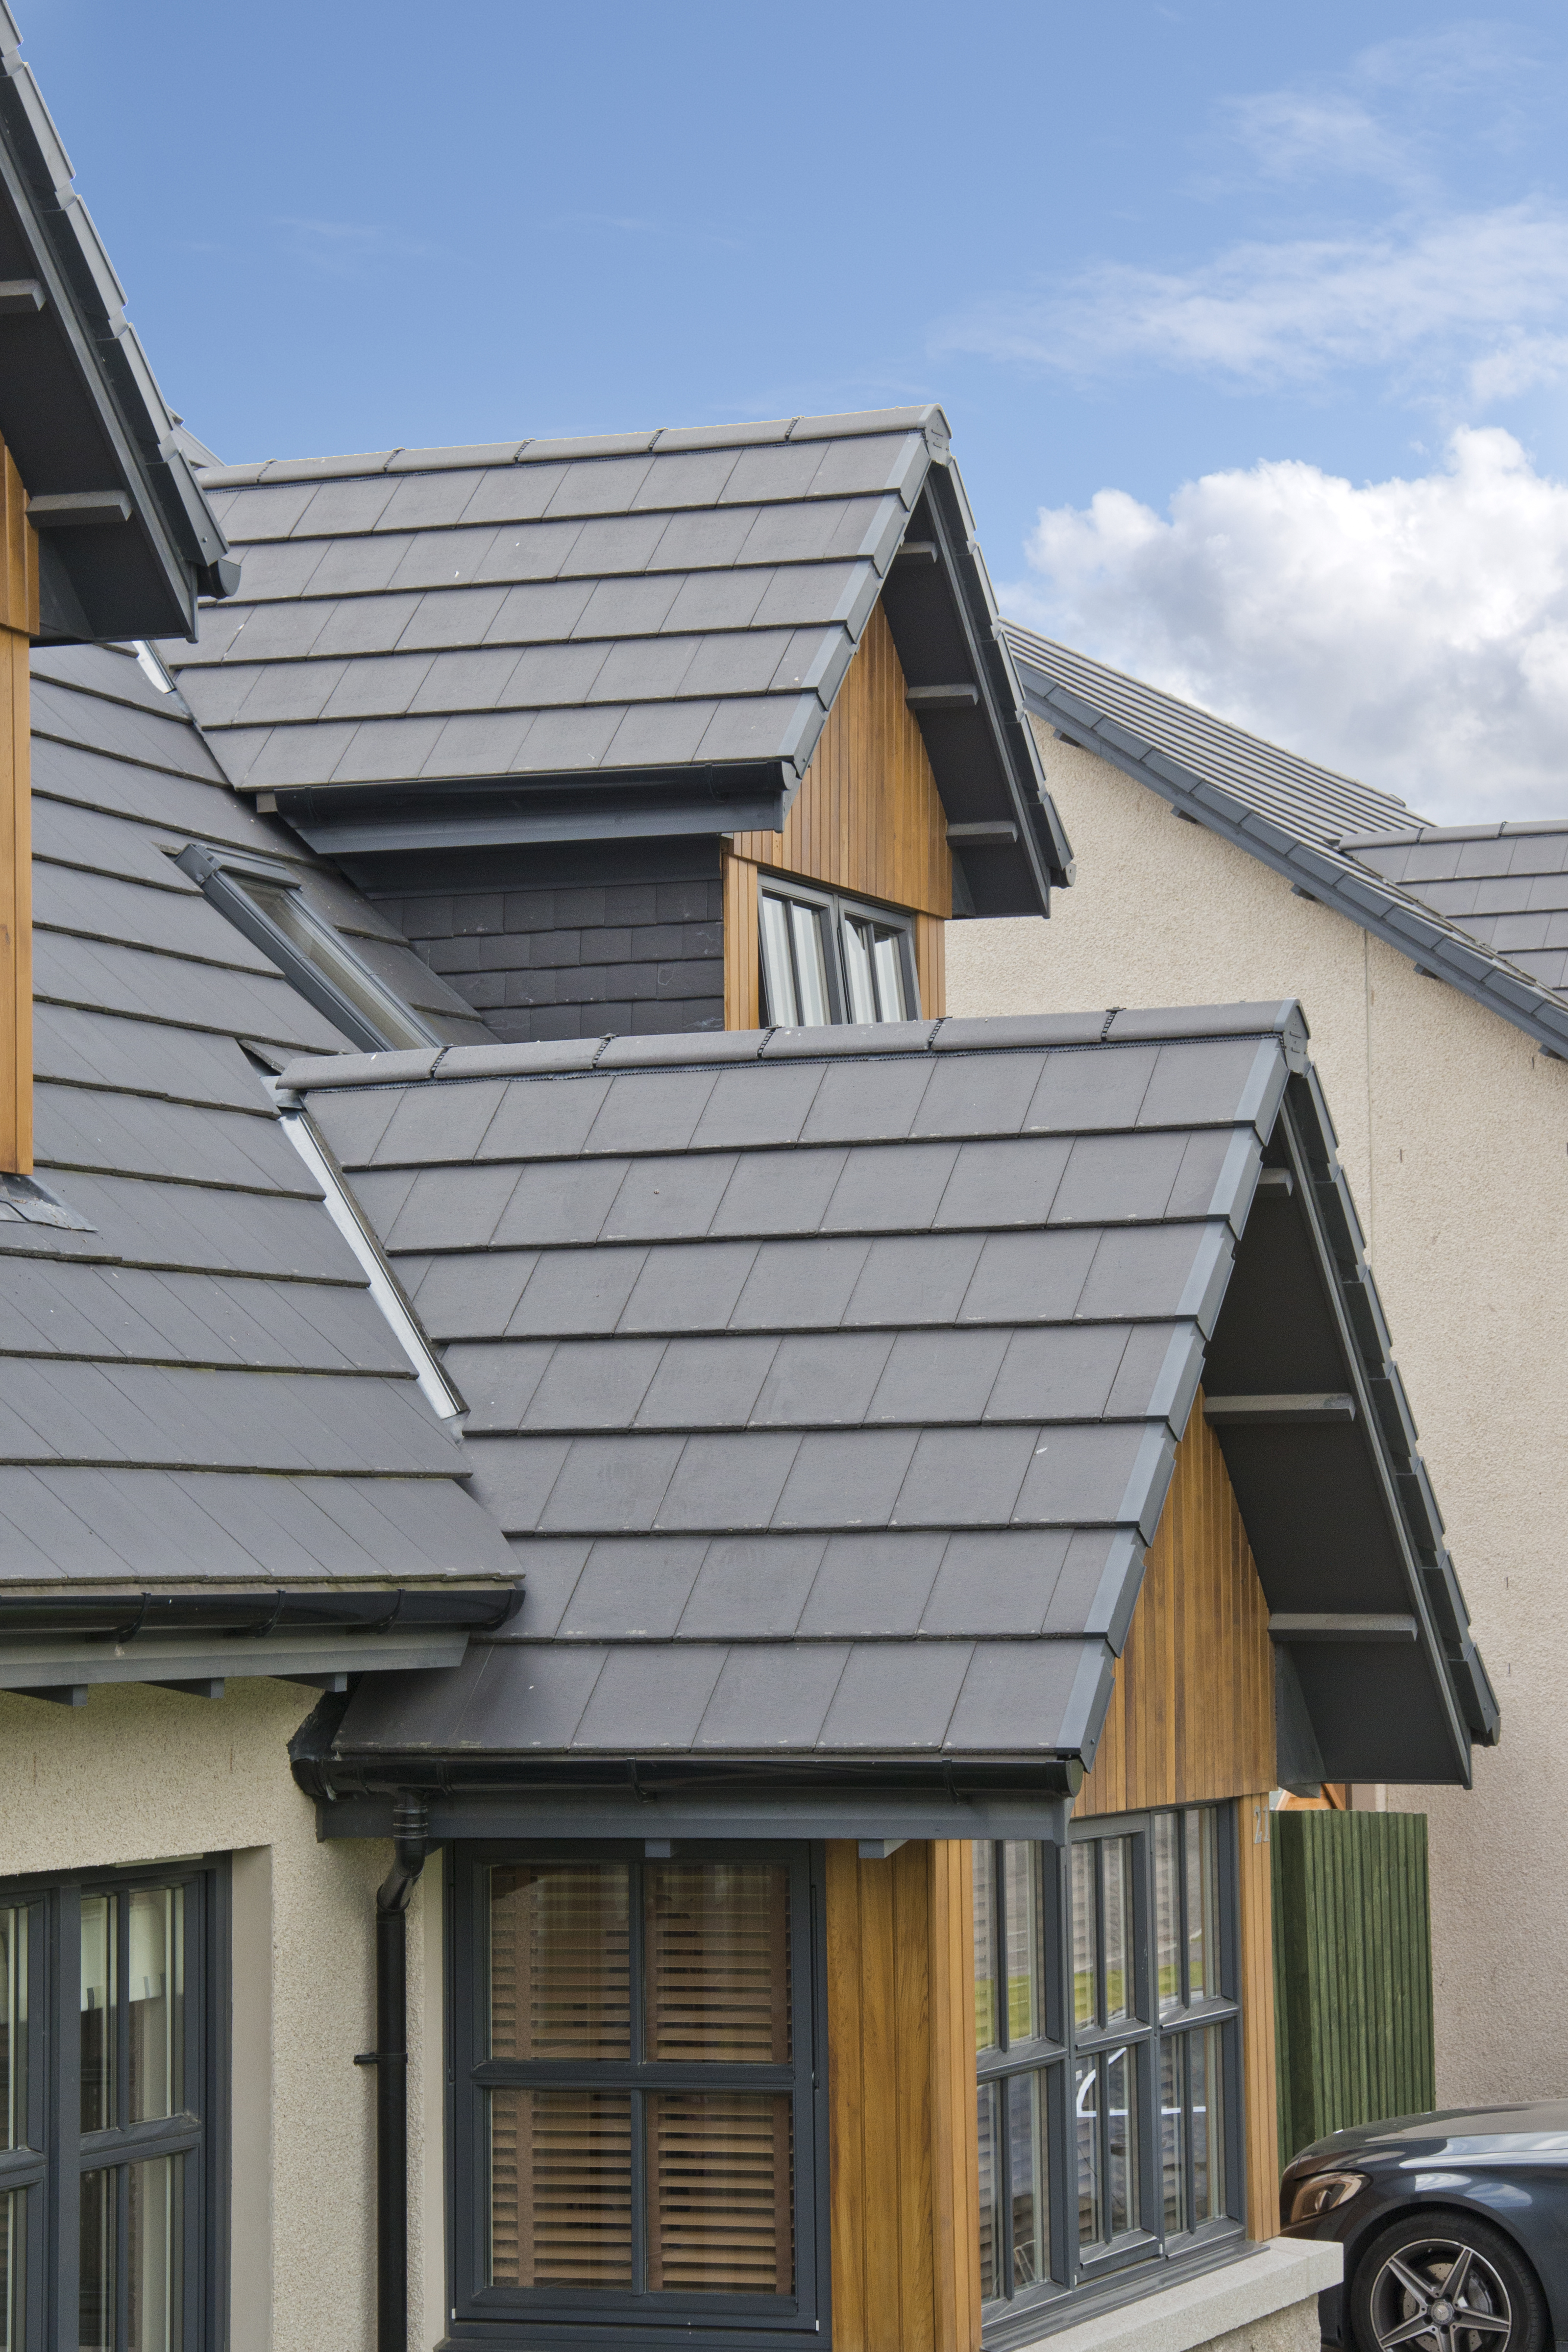 Why specify a complete roof system?